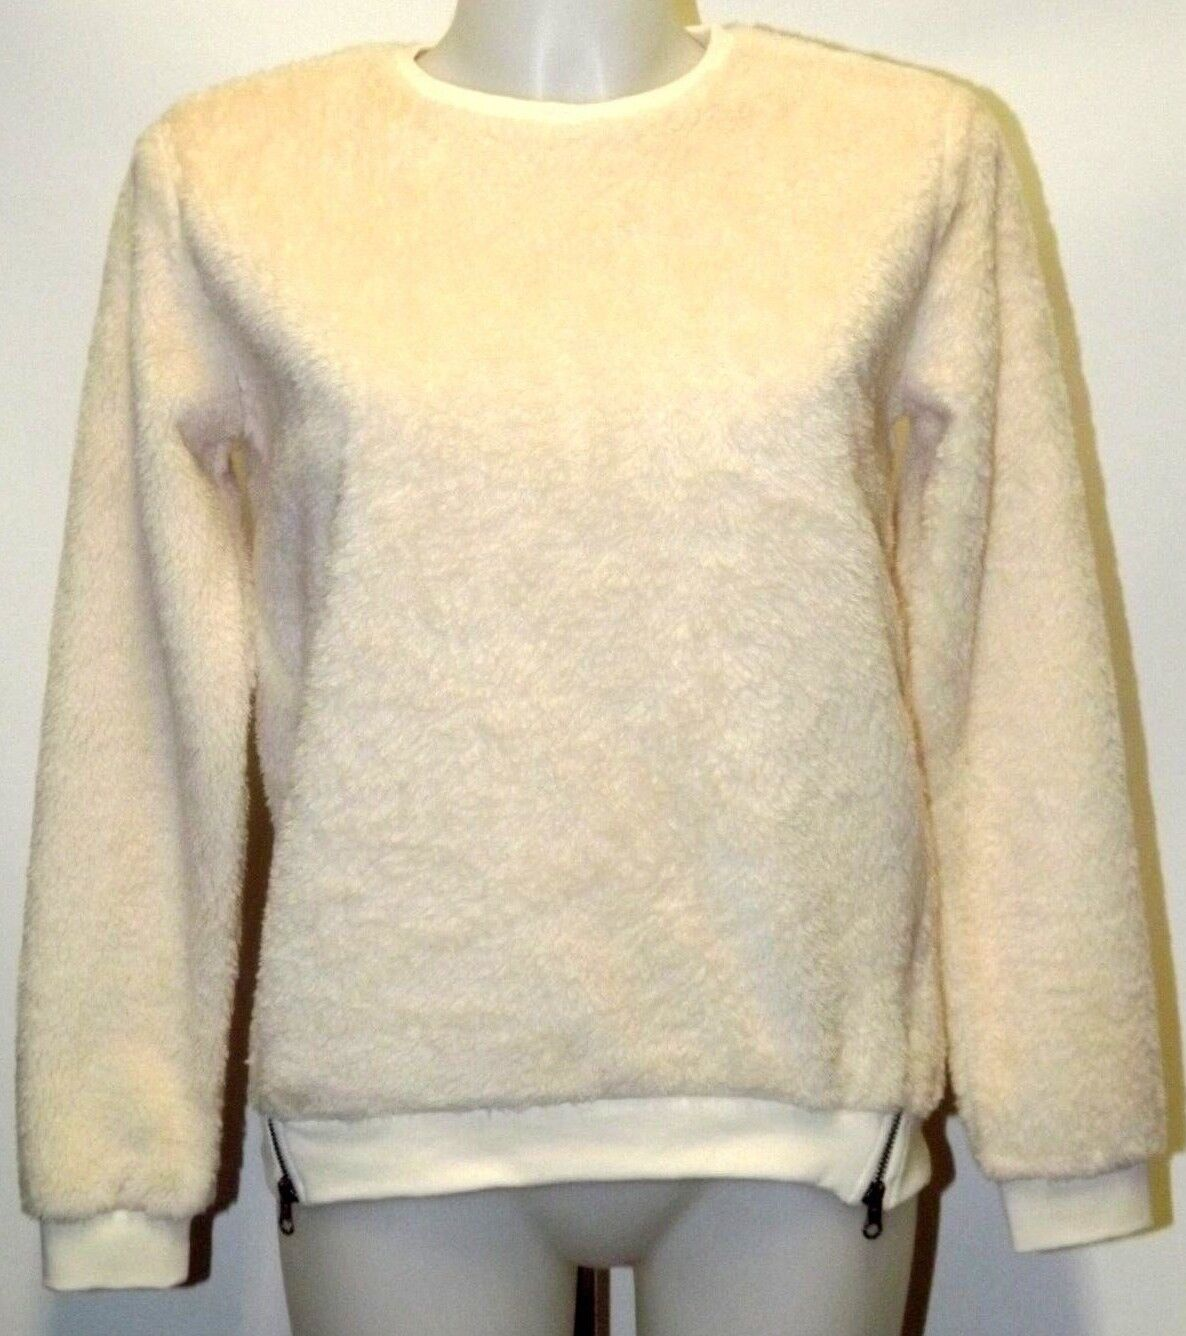 PENN-RICH BY WOOLRICH FELPA ORSETTO SHERPA CREW NECK XS S M ROSE WHITE